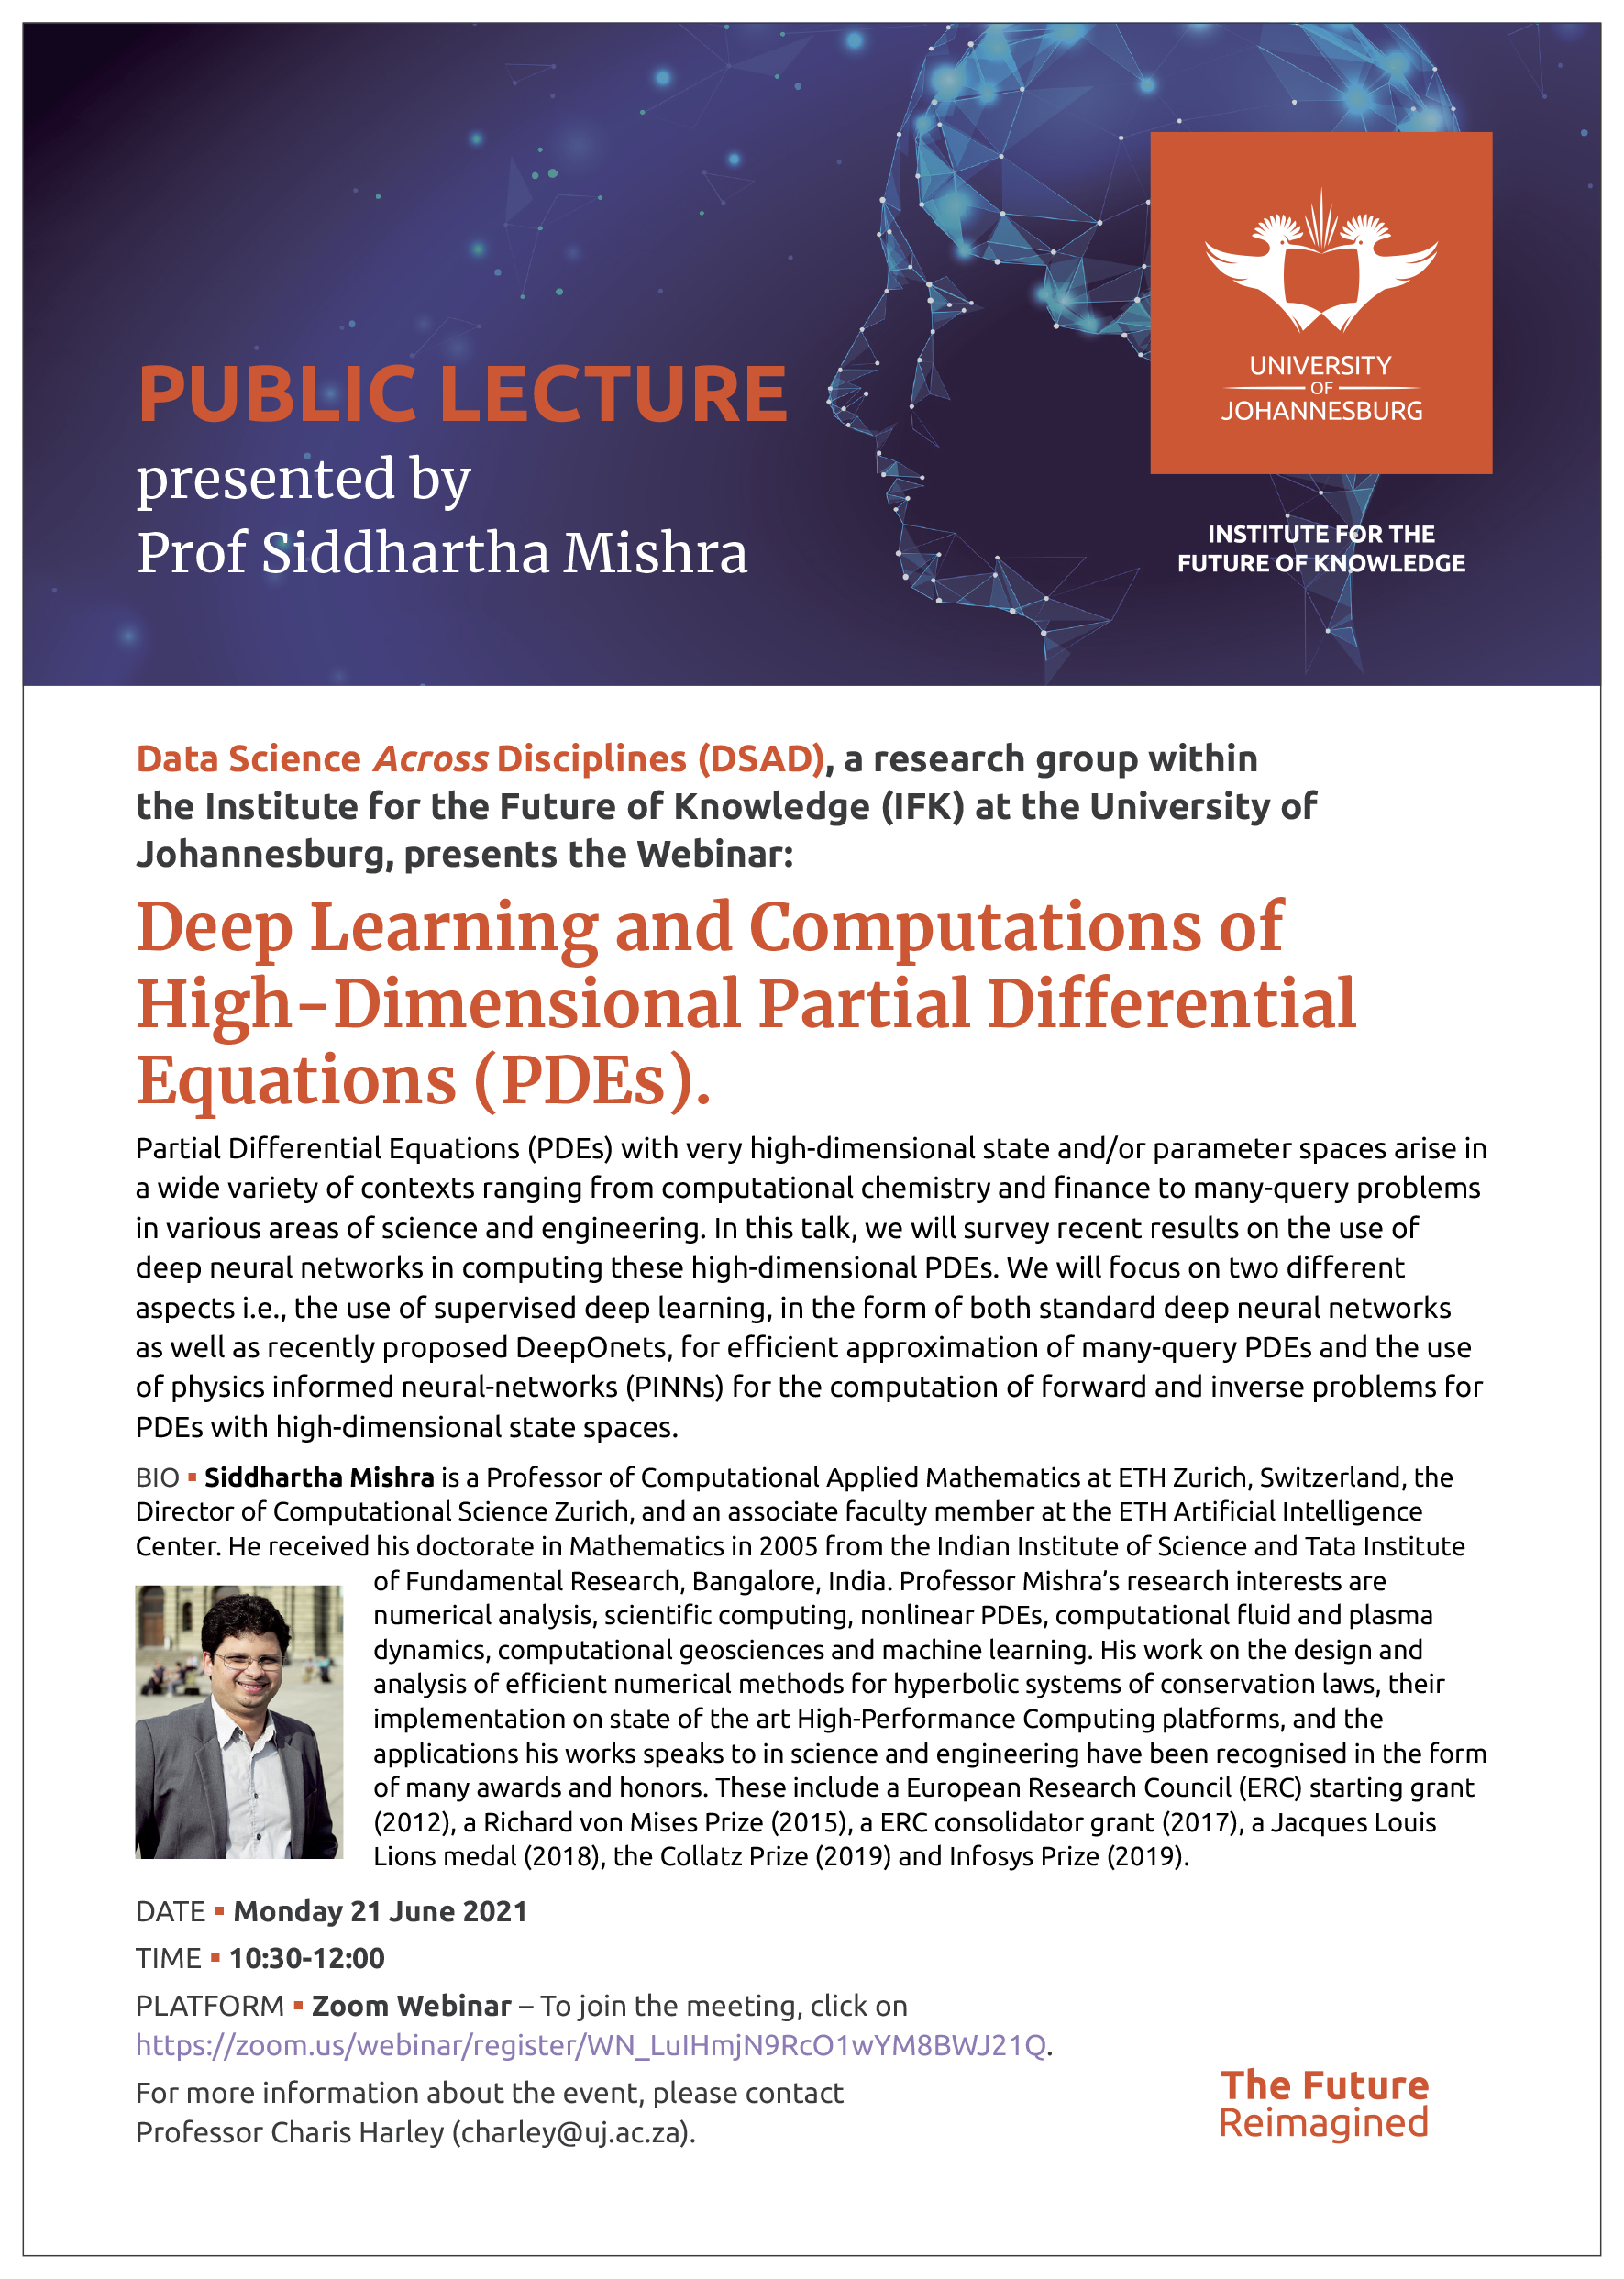 Webinar: Deep Learning and Computations of High-Dimensional Partial Differential Equations (PDEs)